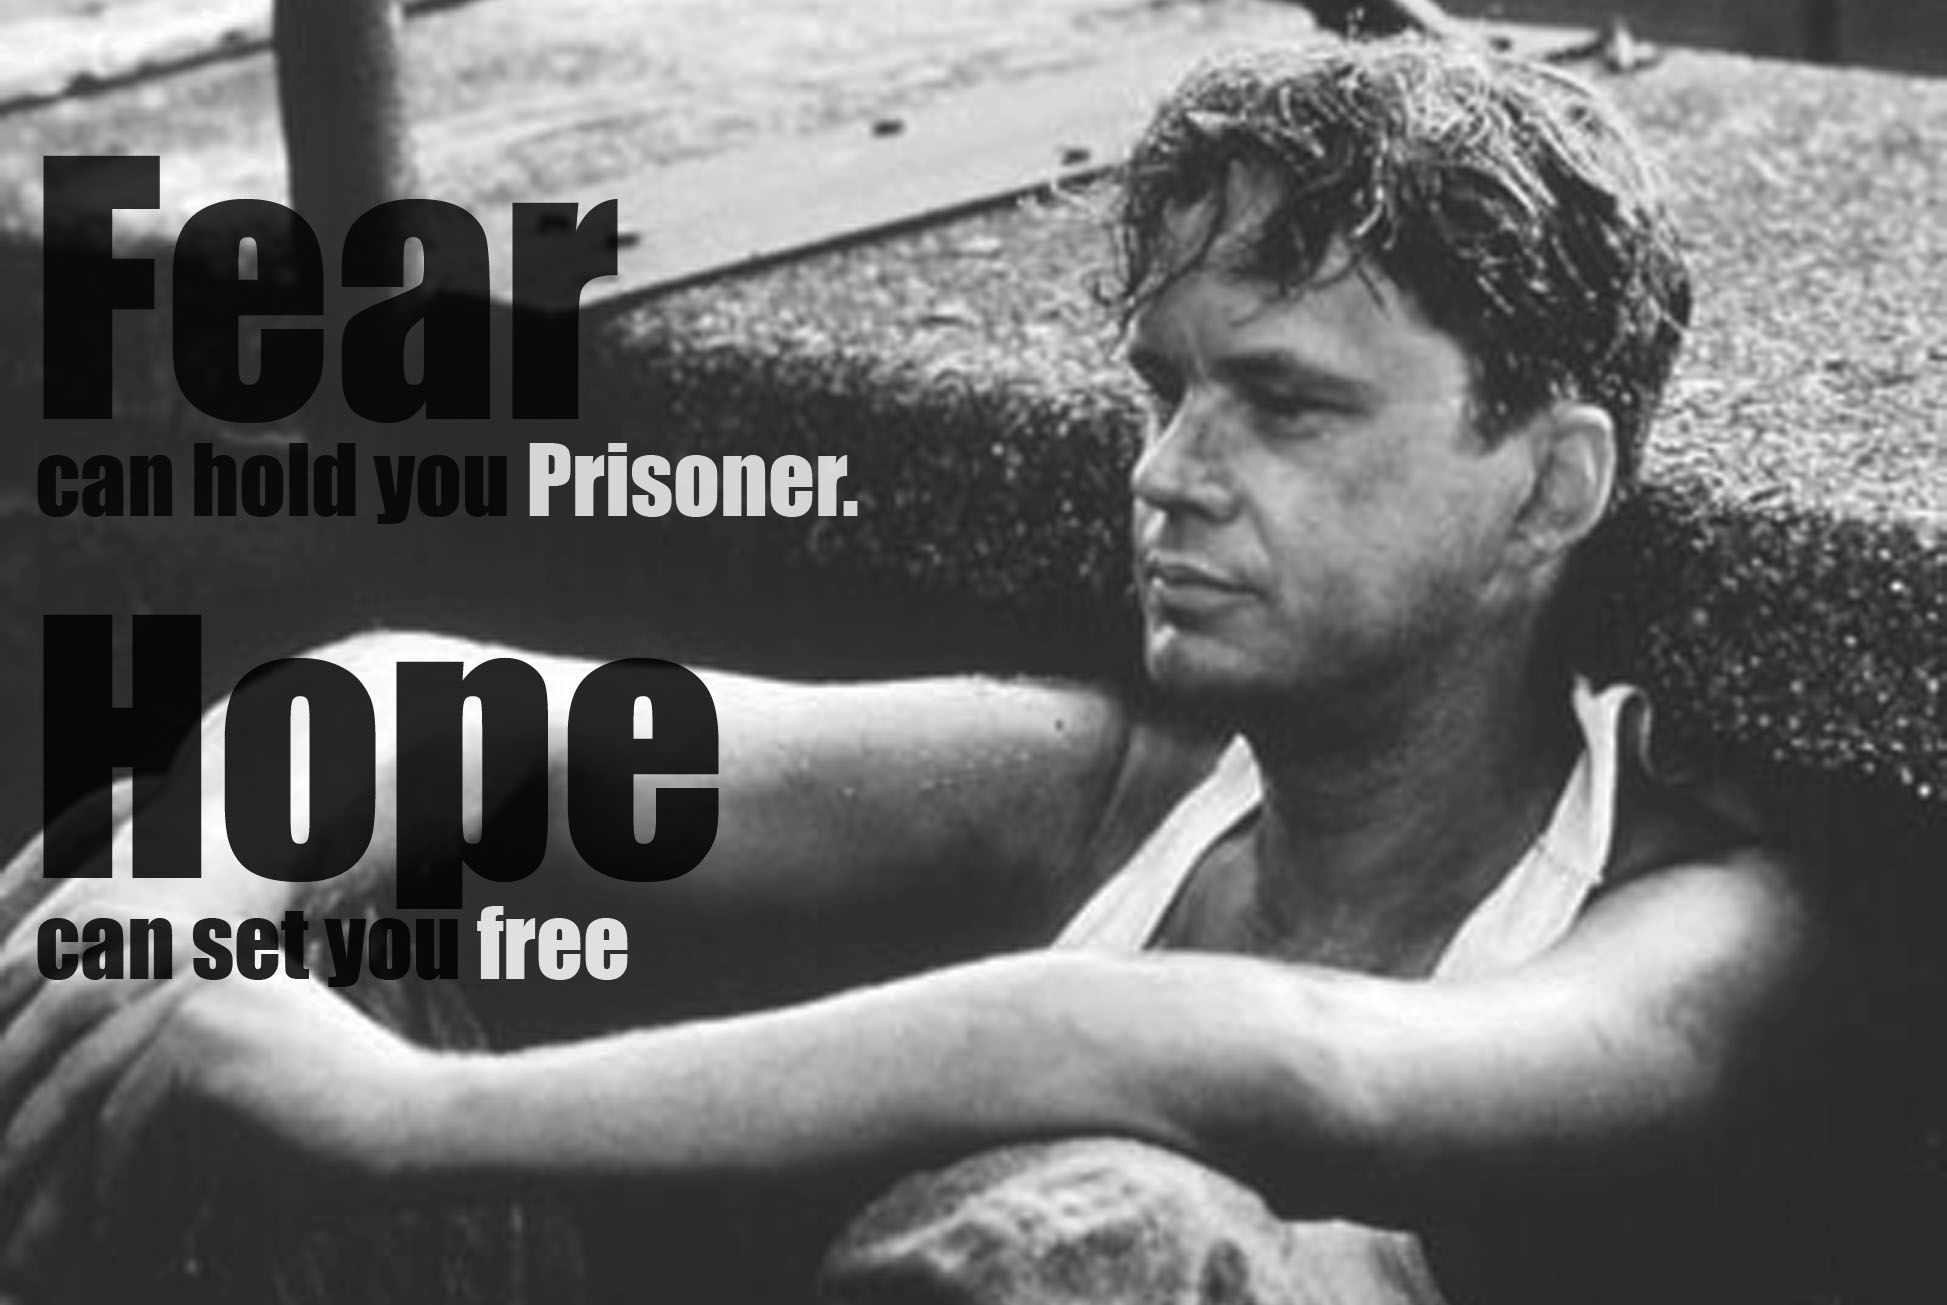 shawshank redemption hope quote google search hope andy dufresne the shawshank redemption tim robbins